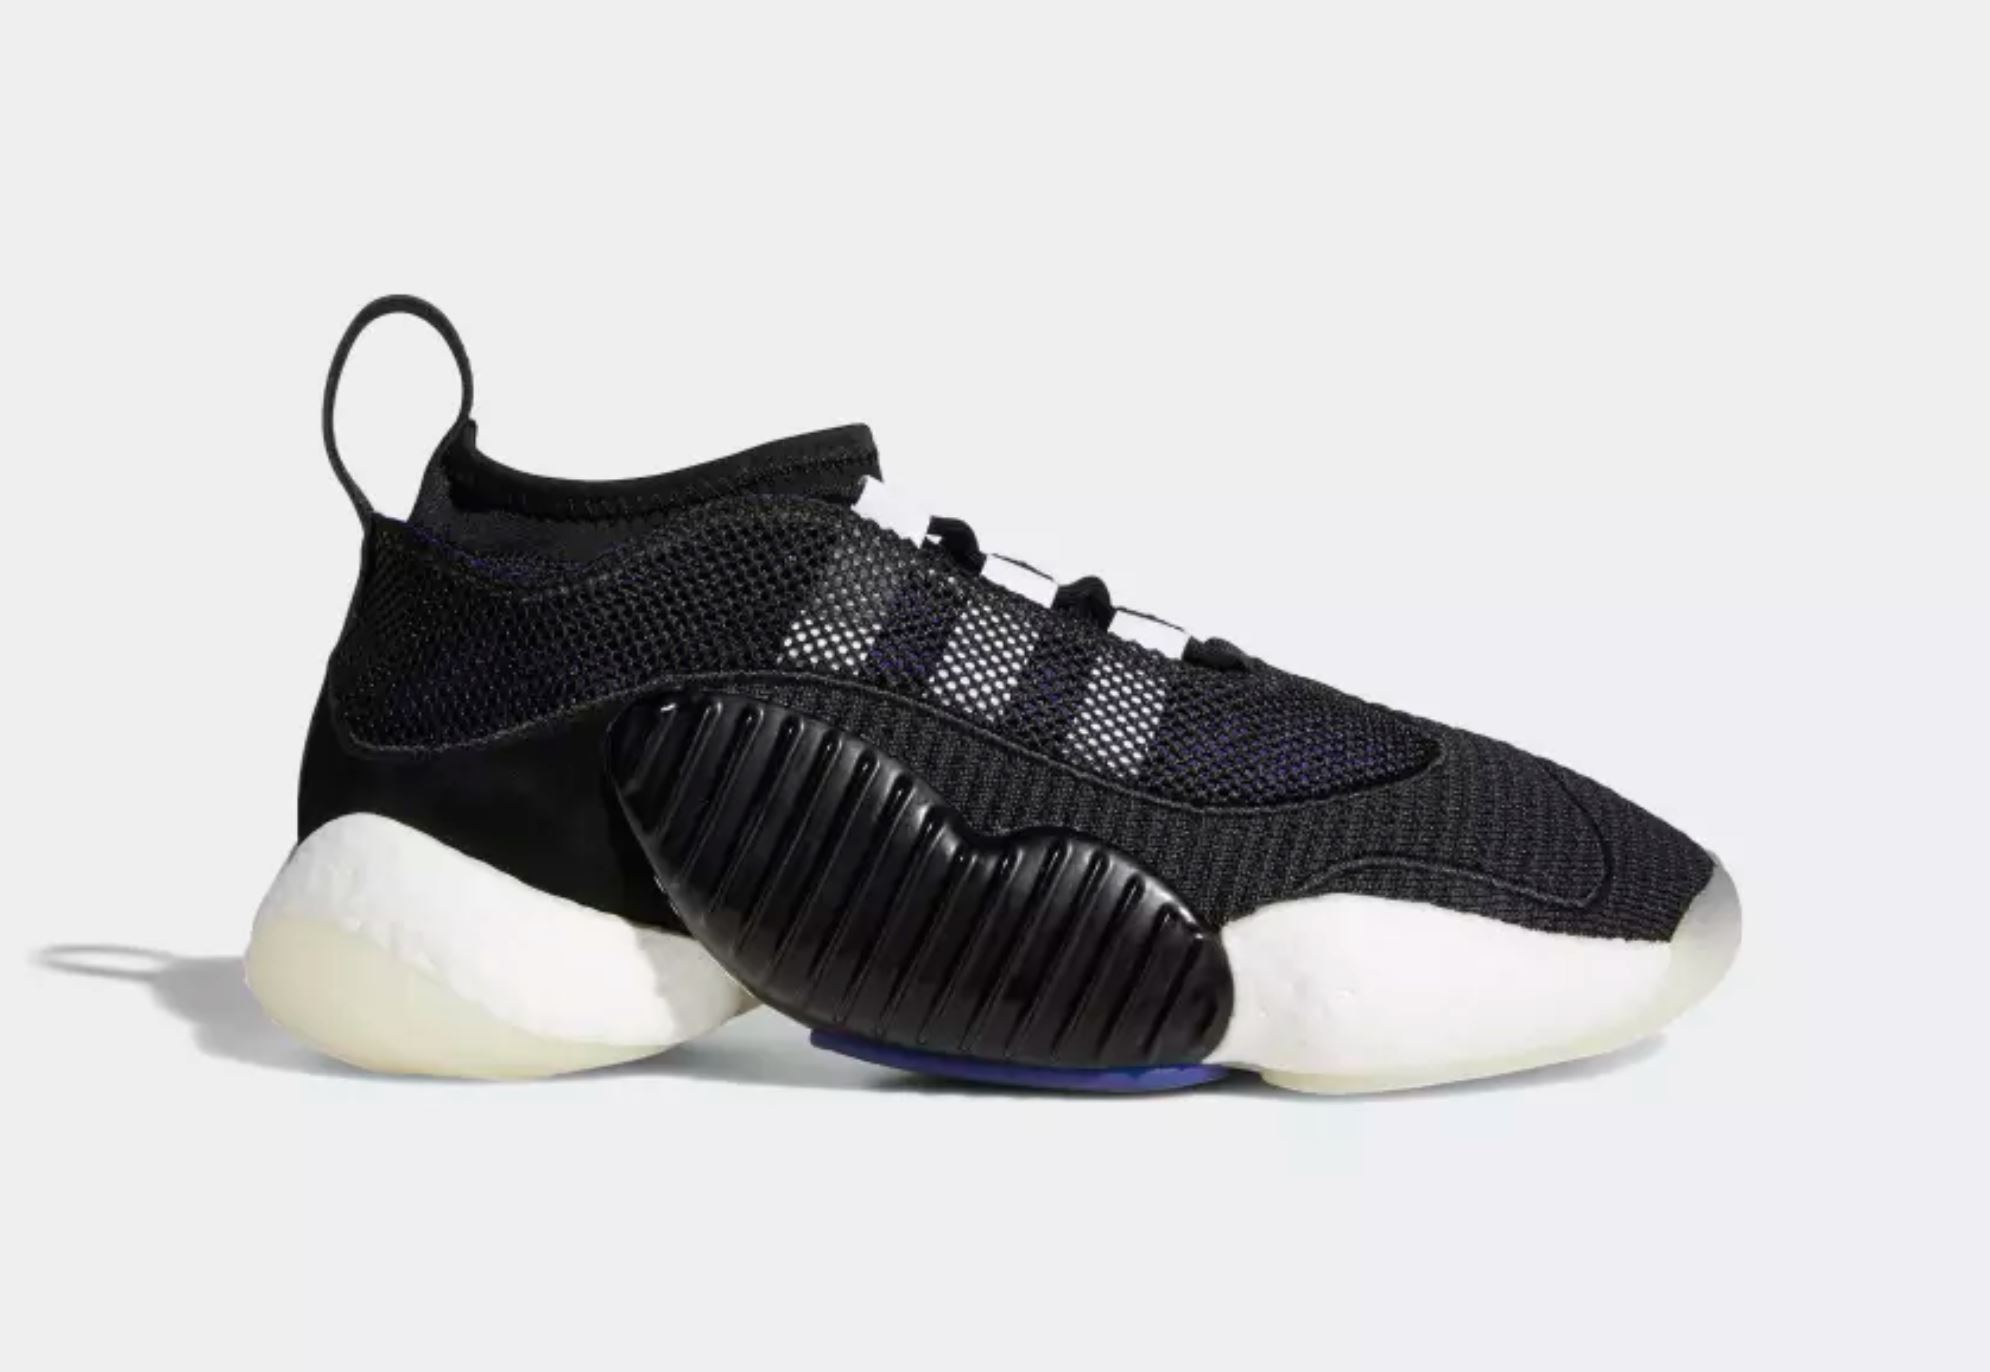 100% authentic 33bb9 f0fa6 The adidas Crazy BYW II Releases Tomorrow, With Several Big ...